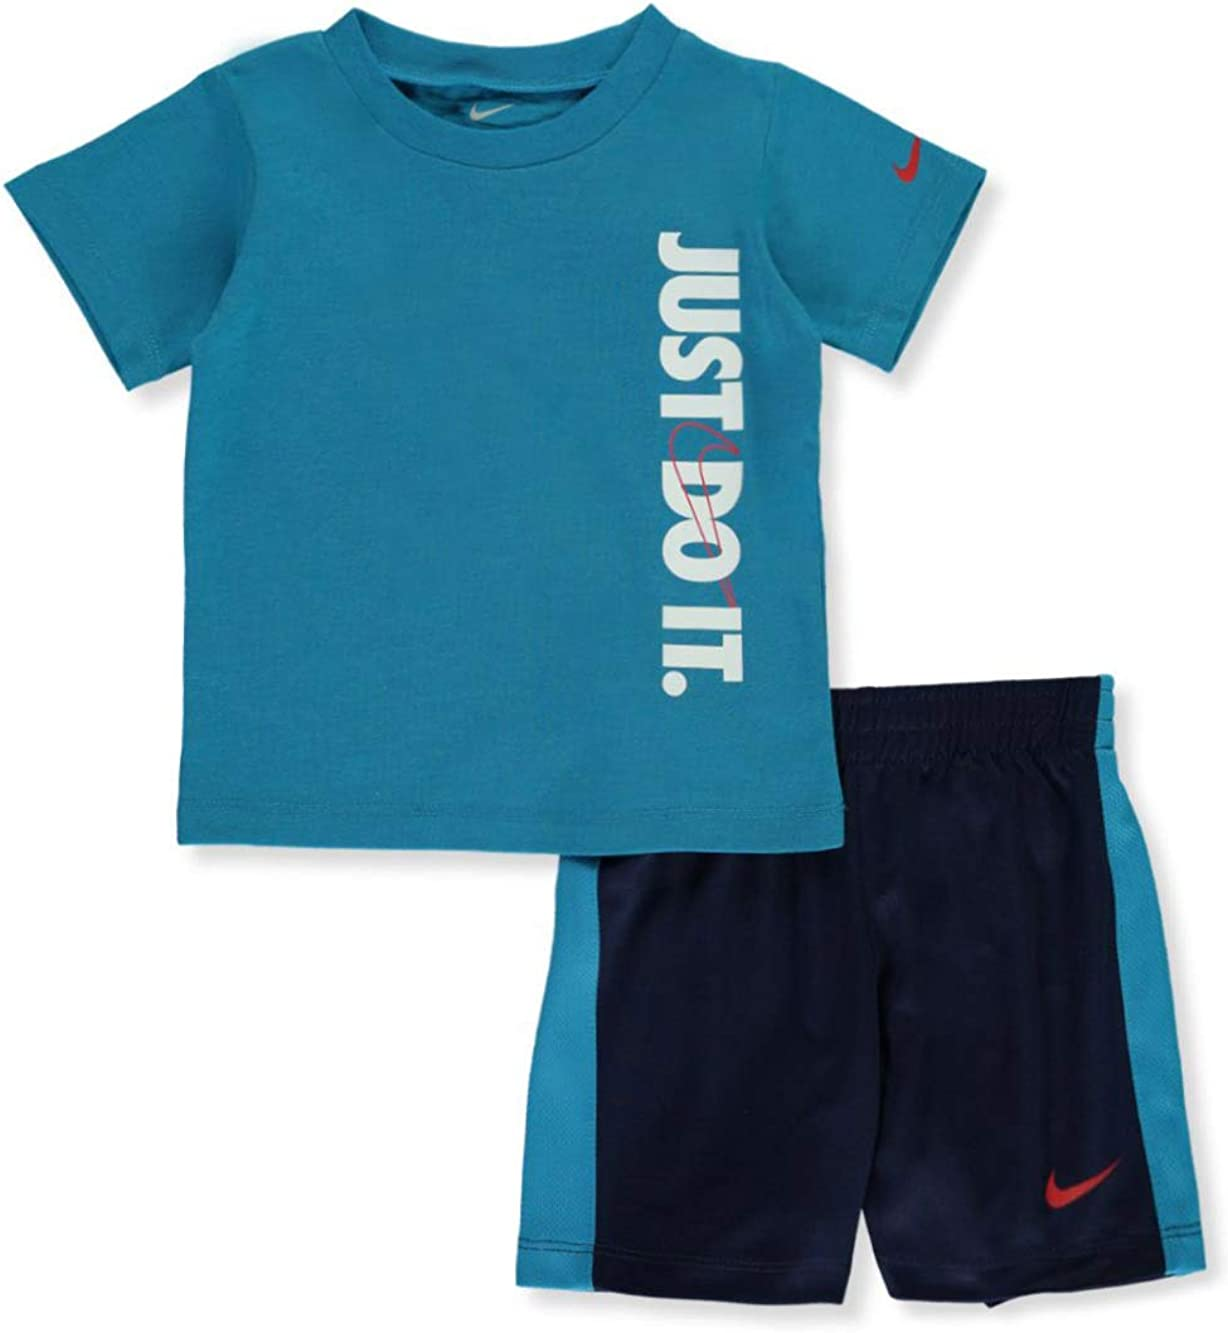 Nike Baby Boys' 2-Piece Shorts Set Outfit